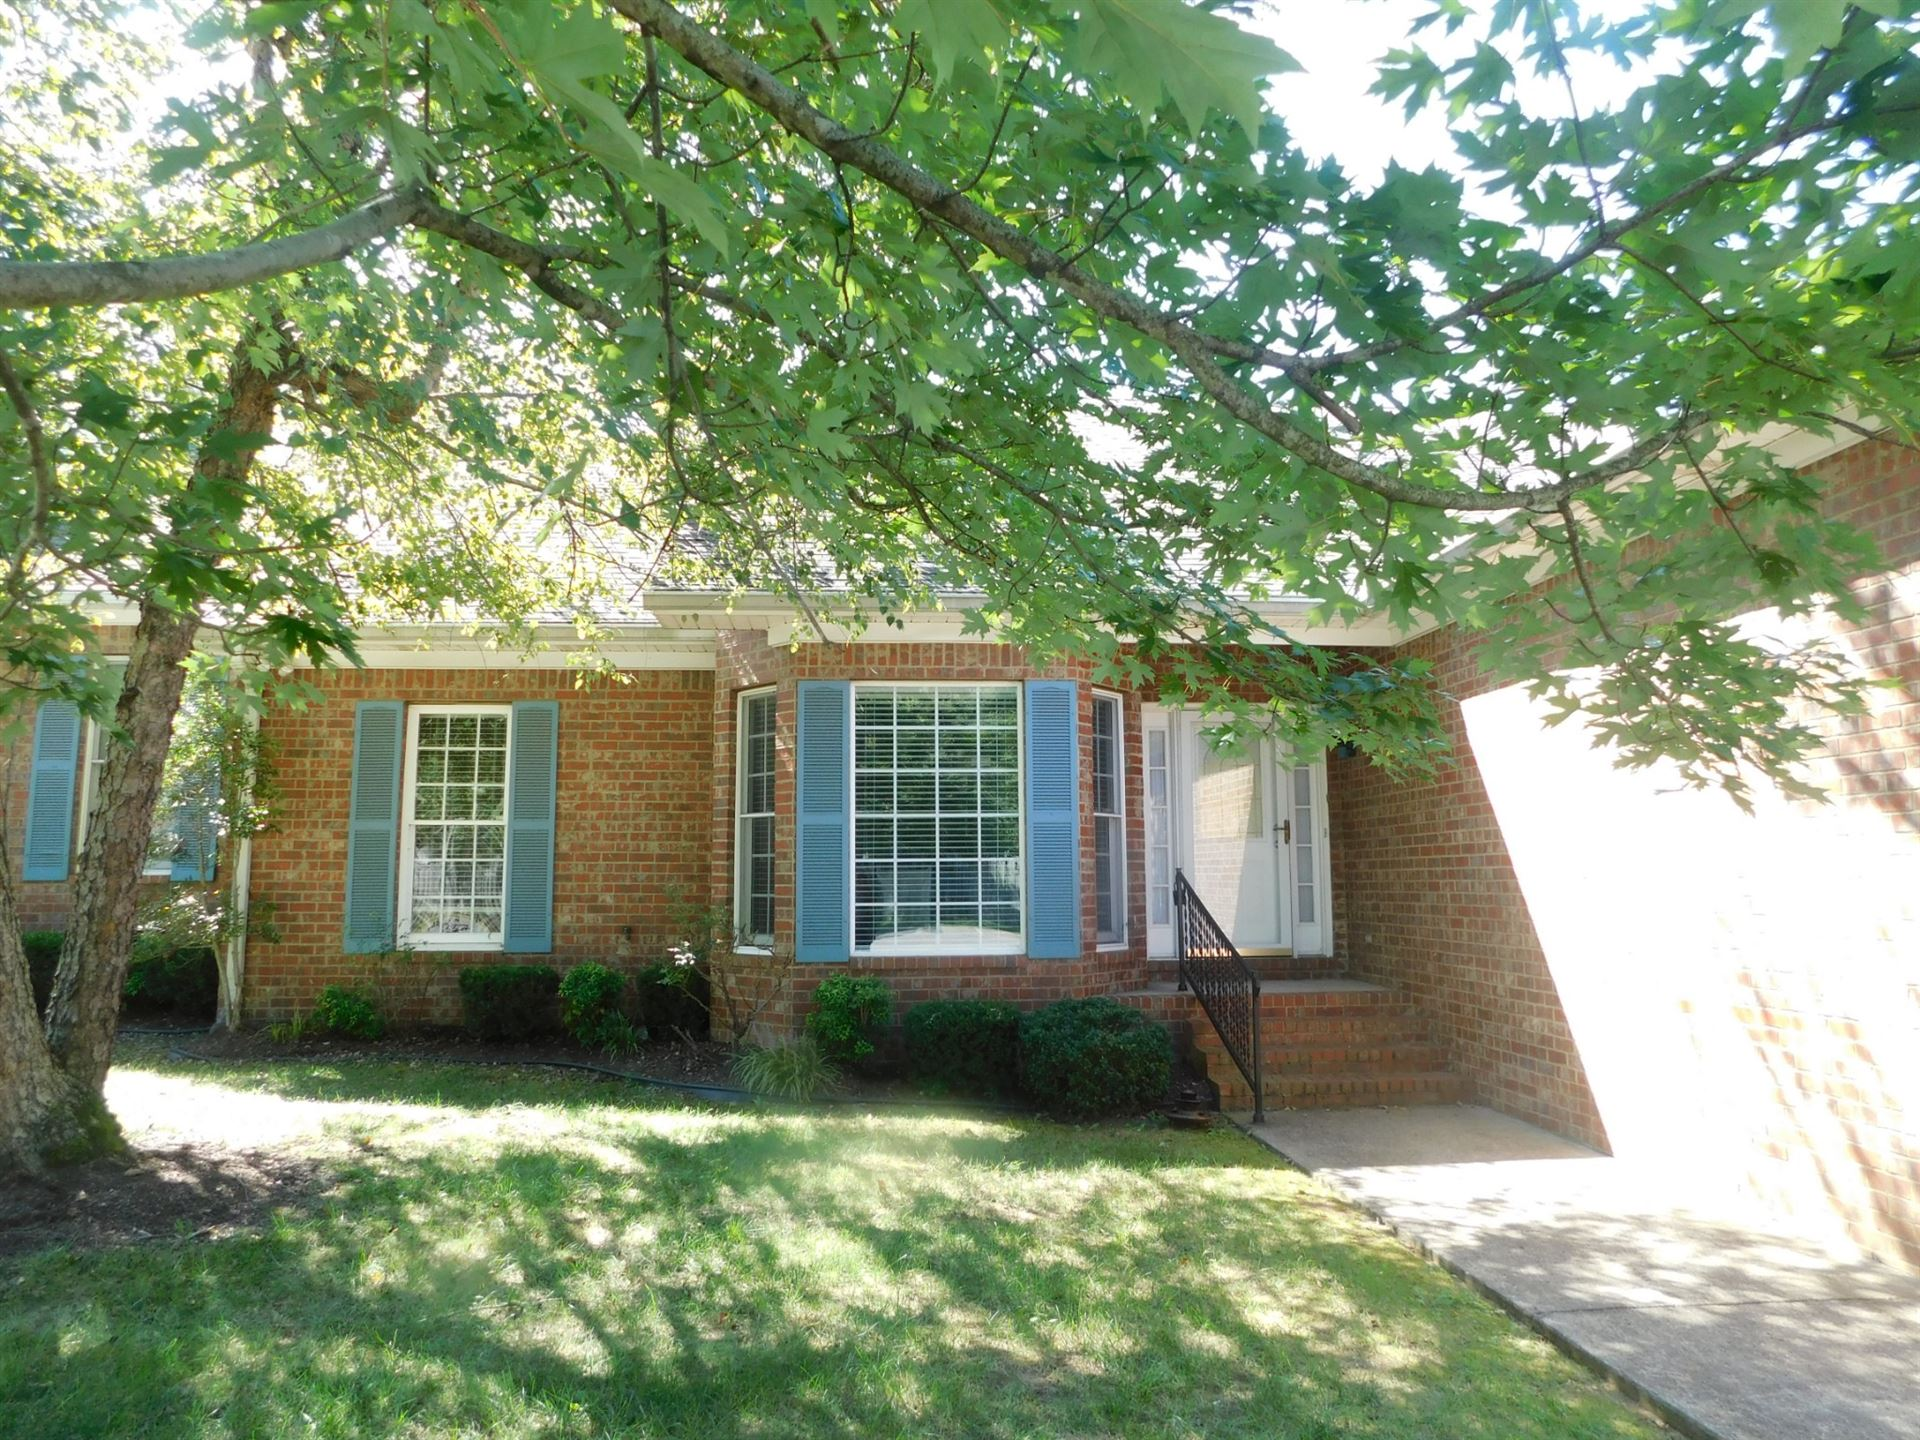 320 E Franklin St #15, Gallatin, TN 37066 - MLS#: 2190679